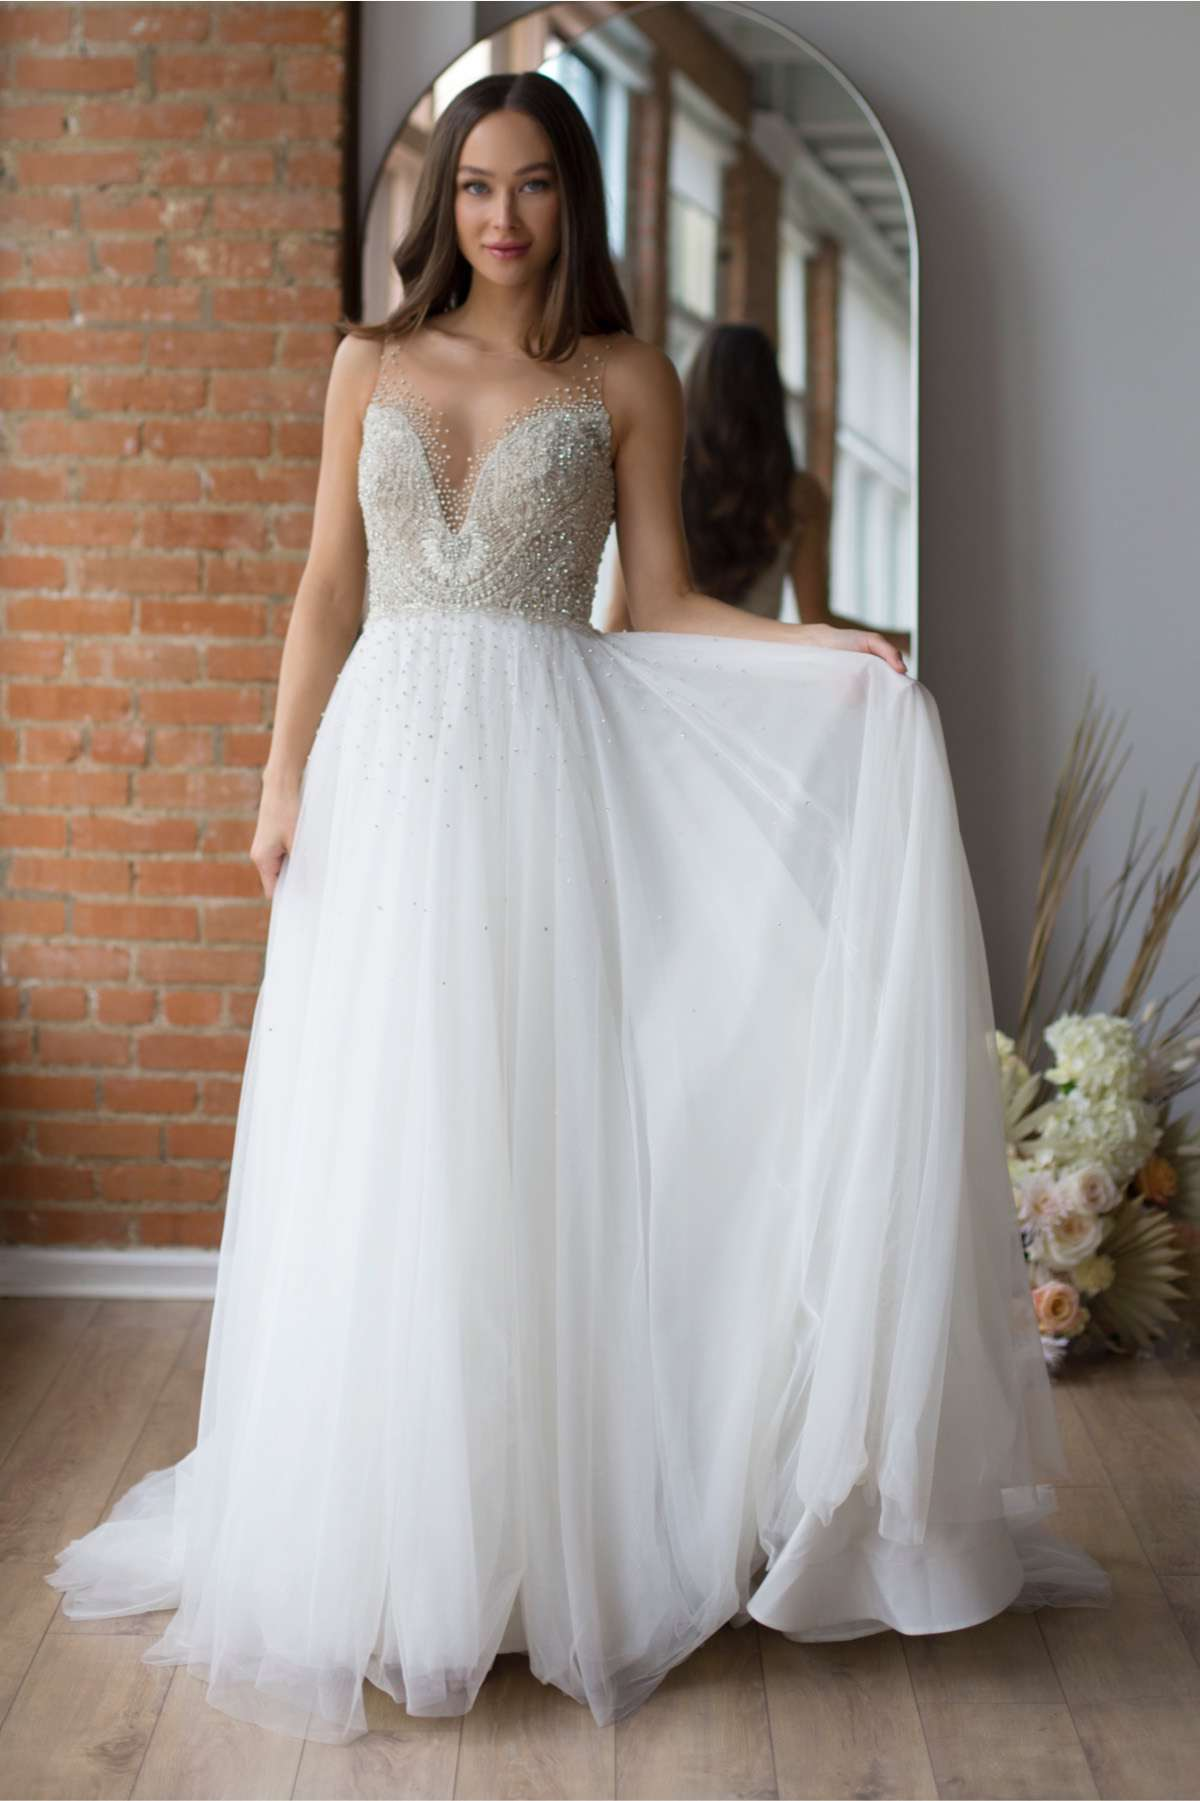 Model in A-line wedding gown with an allover beaded bodice and a soft net skirt